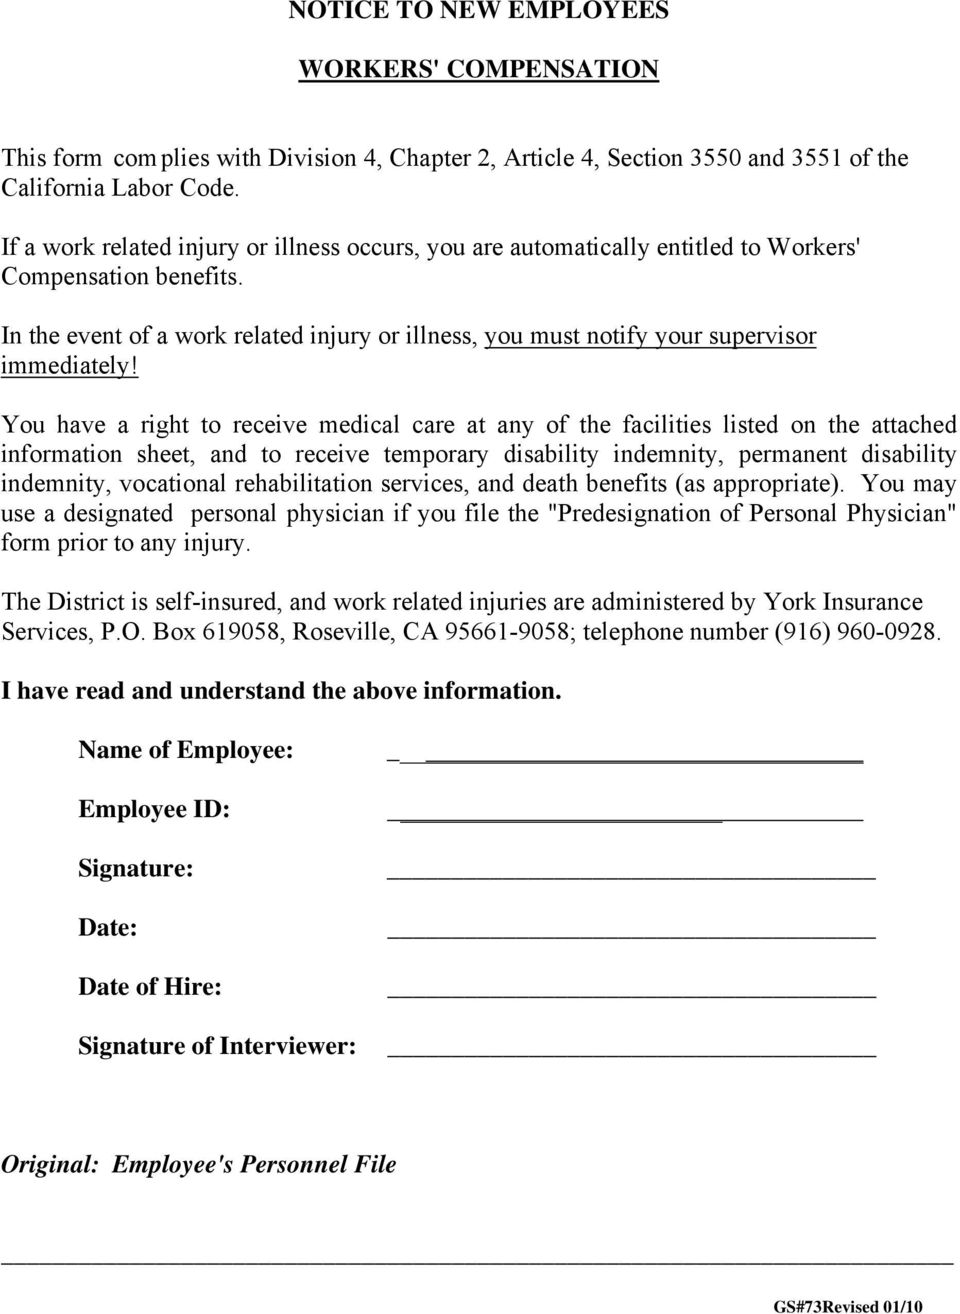 In the event of a work related injury or illness, you must notify your supervisor immediately!